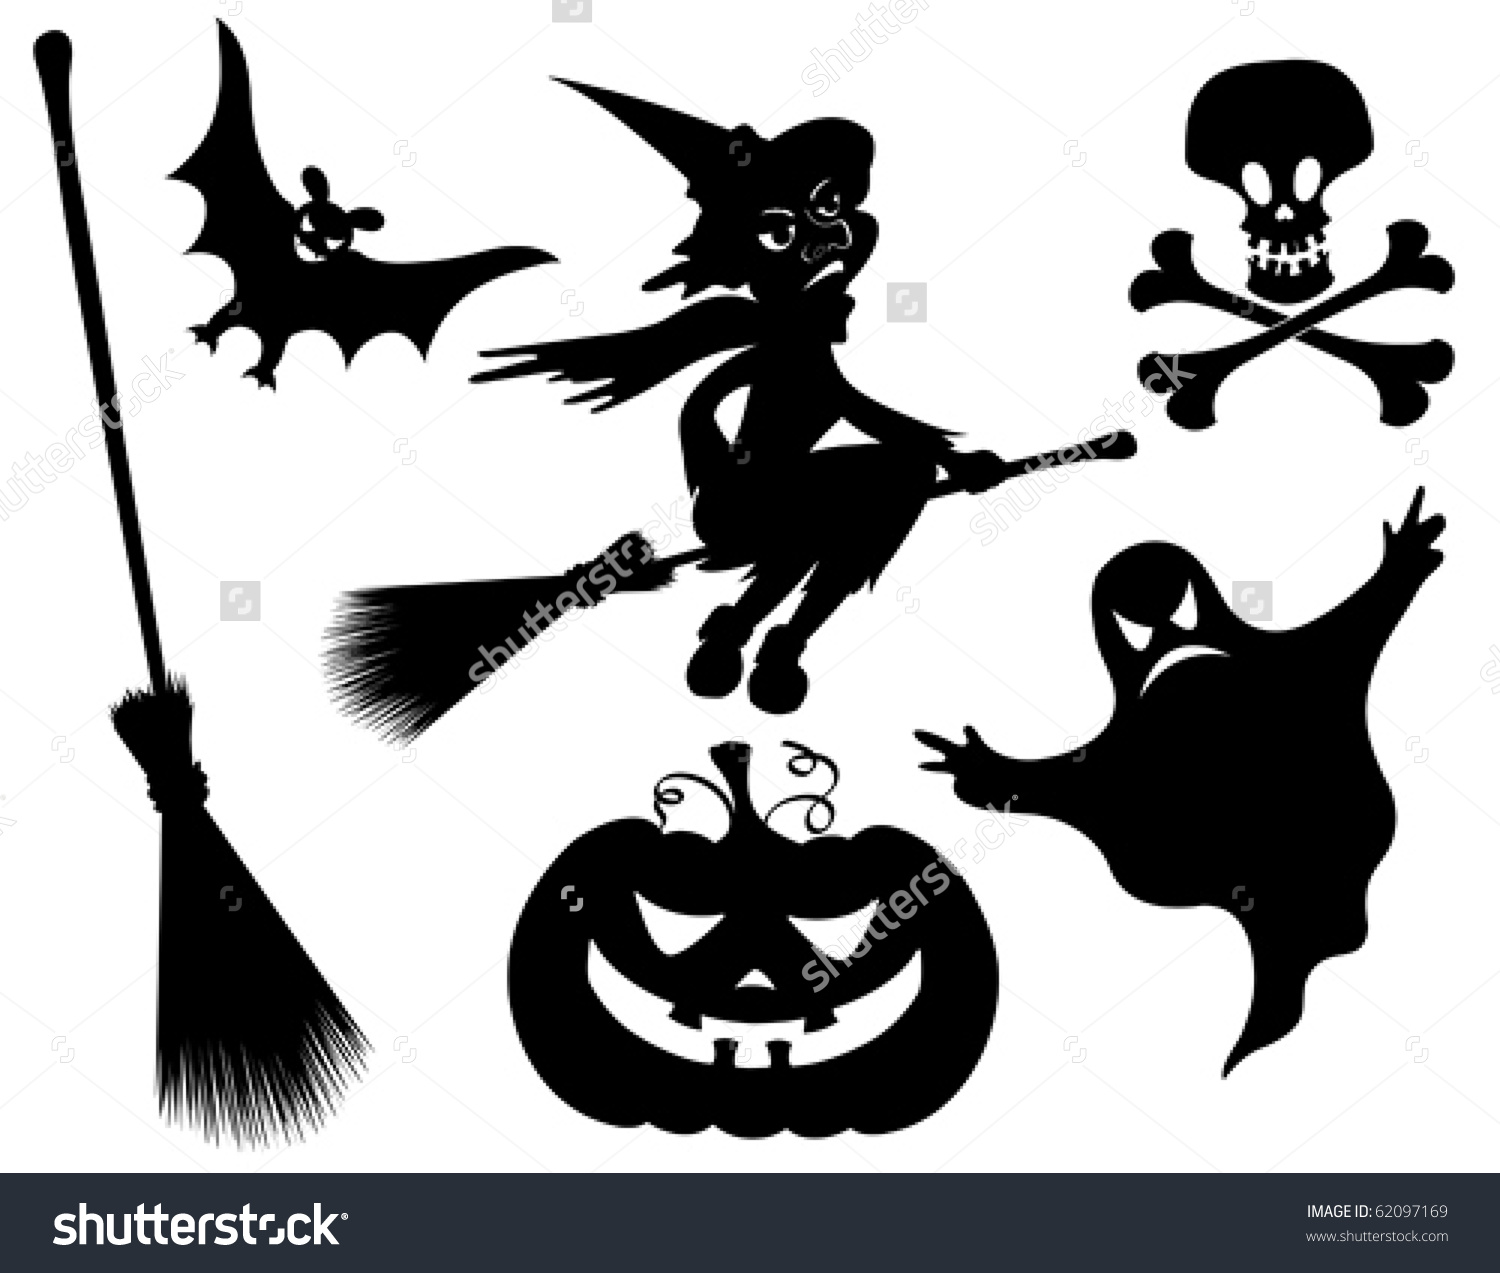 1500x1273 Witches Broom Silhouette Clipart